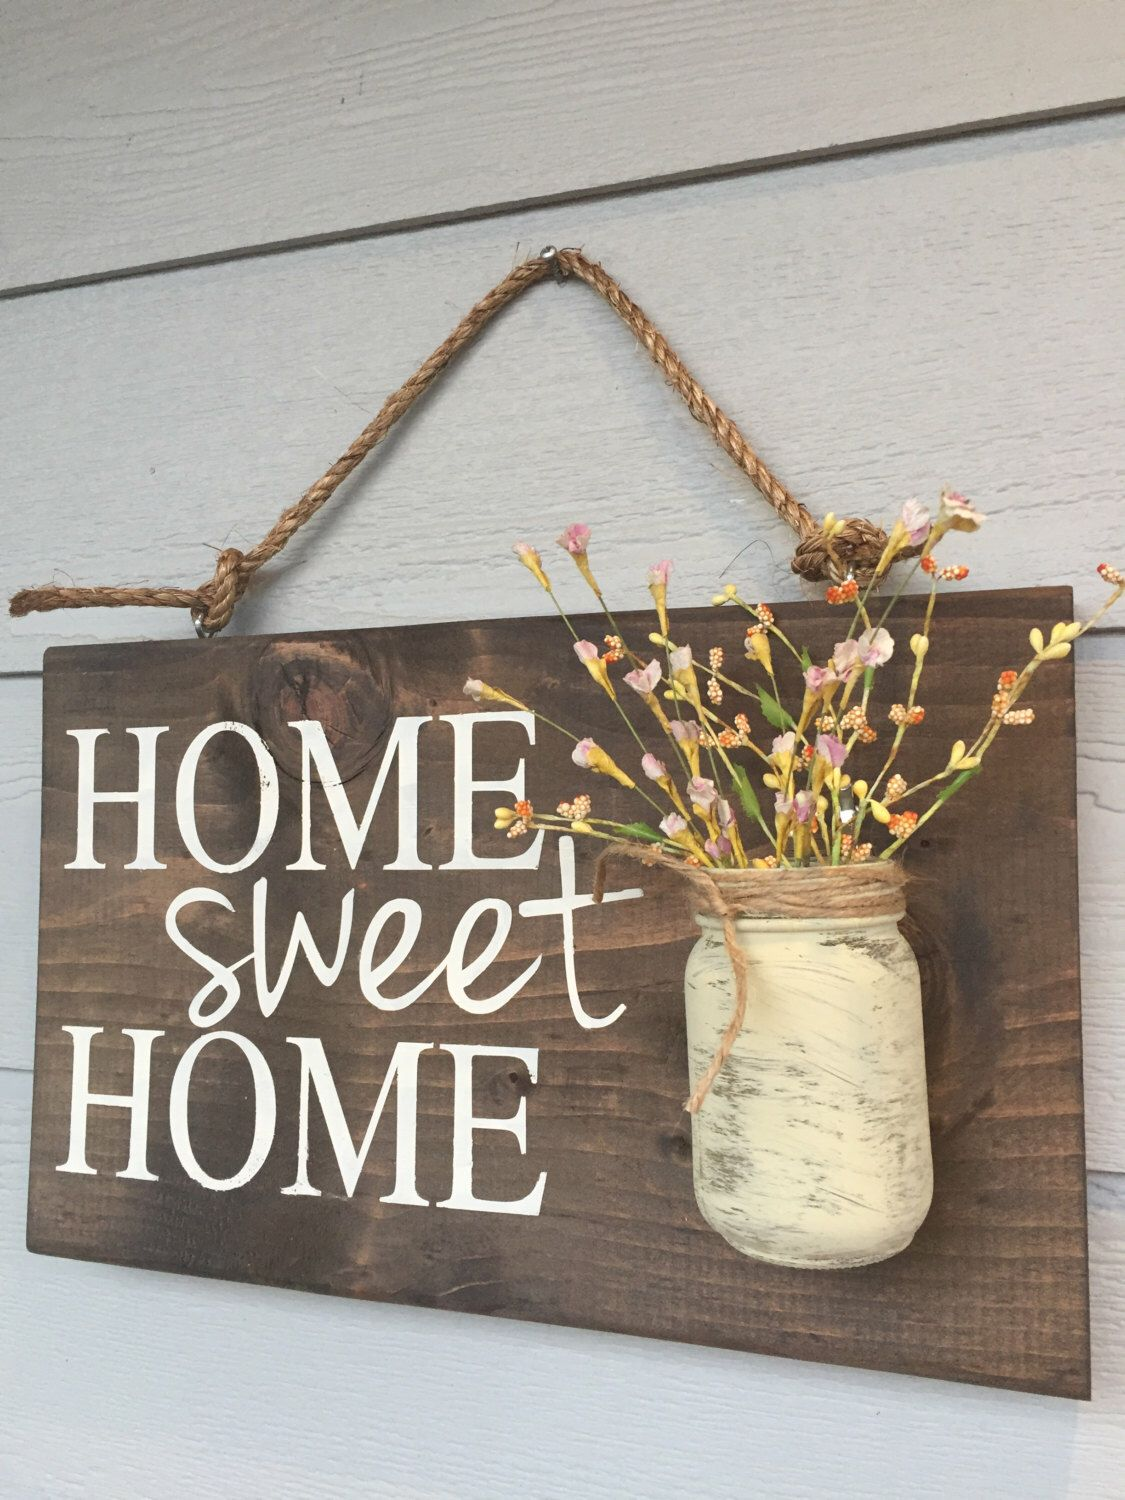 Bon Rustic Outdoor Home Sweet Home  Wood Signs   Front Door Sign   Rustic Home  Decor